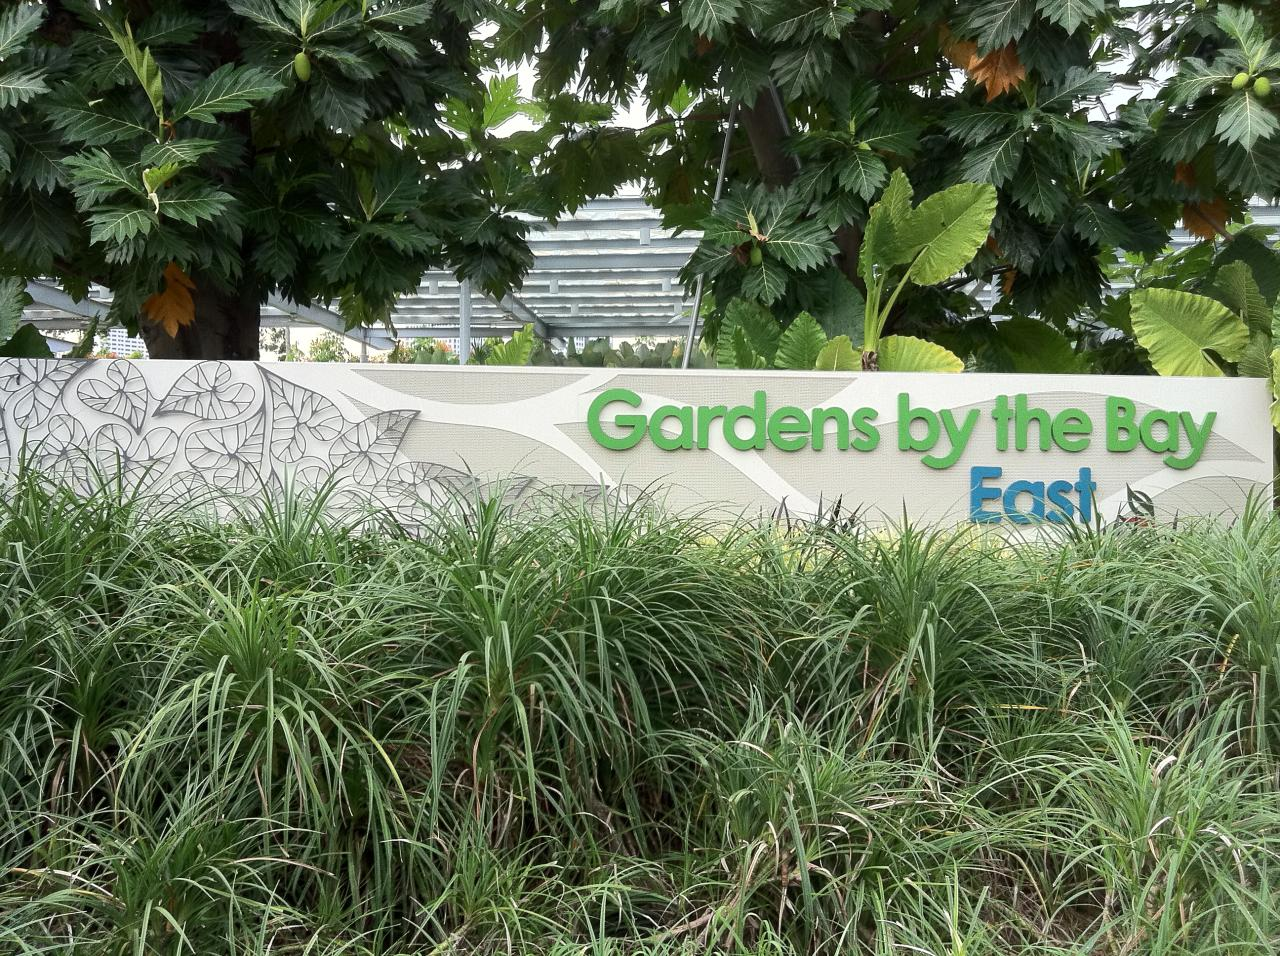 Garden By The Bay East file:gardensthe bay east sign, singapore - 20120422